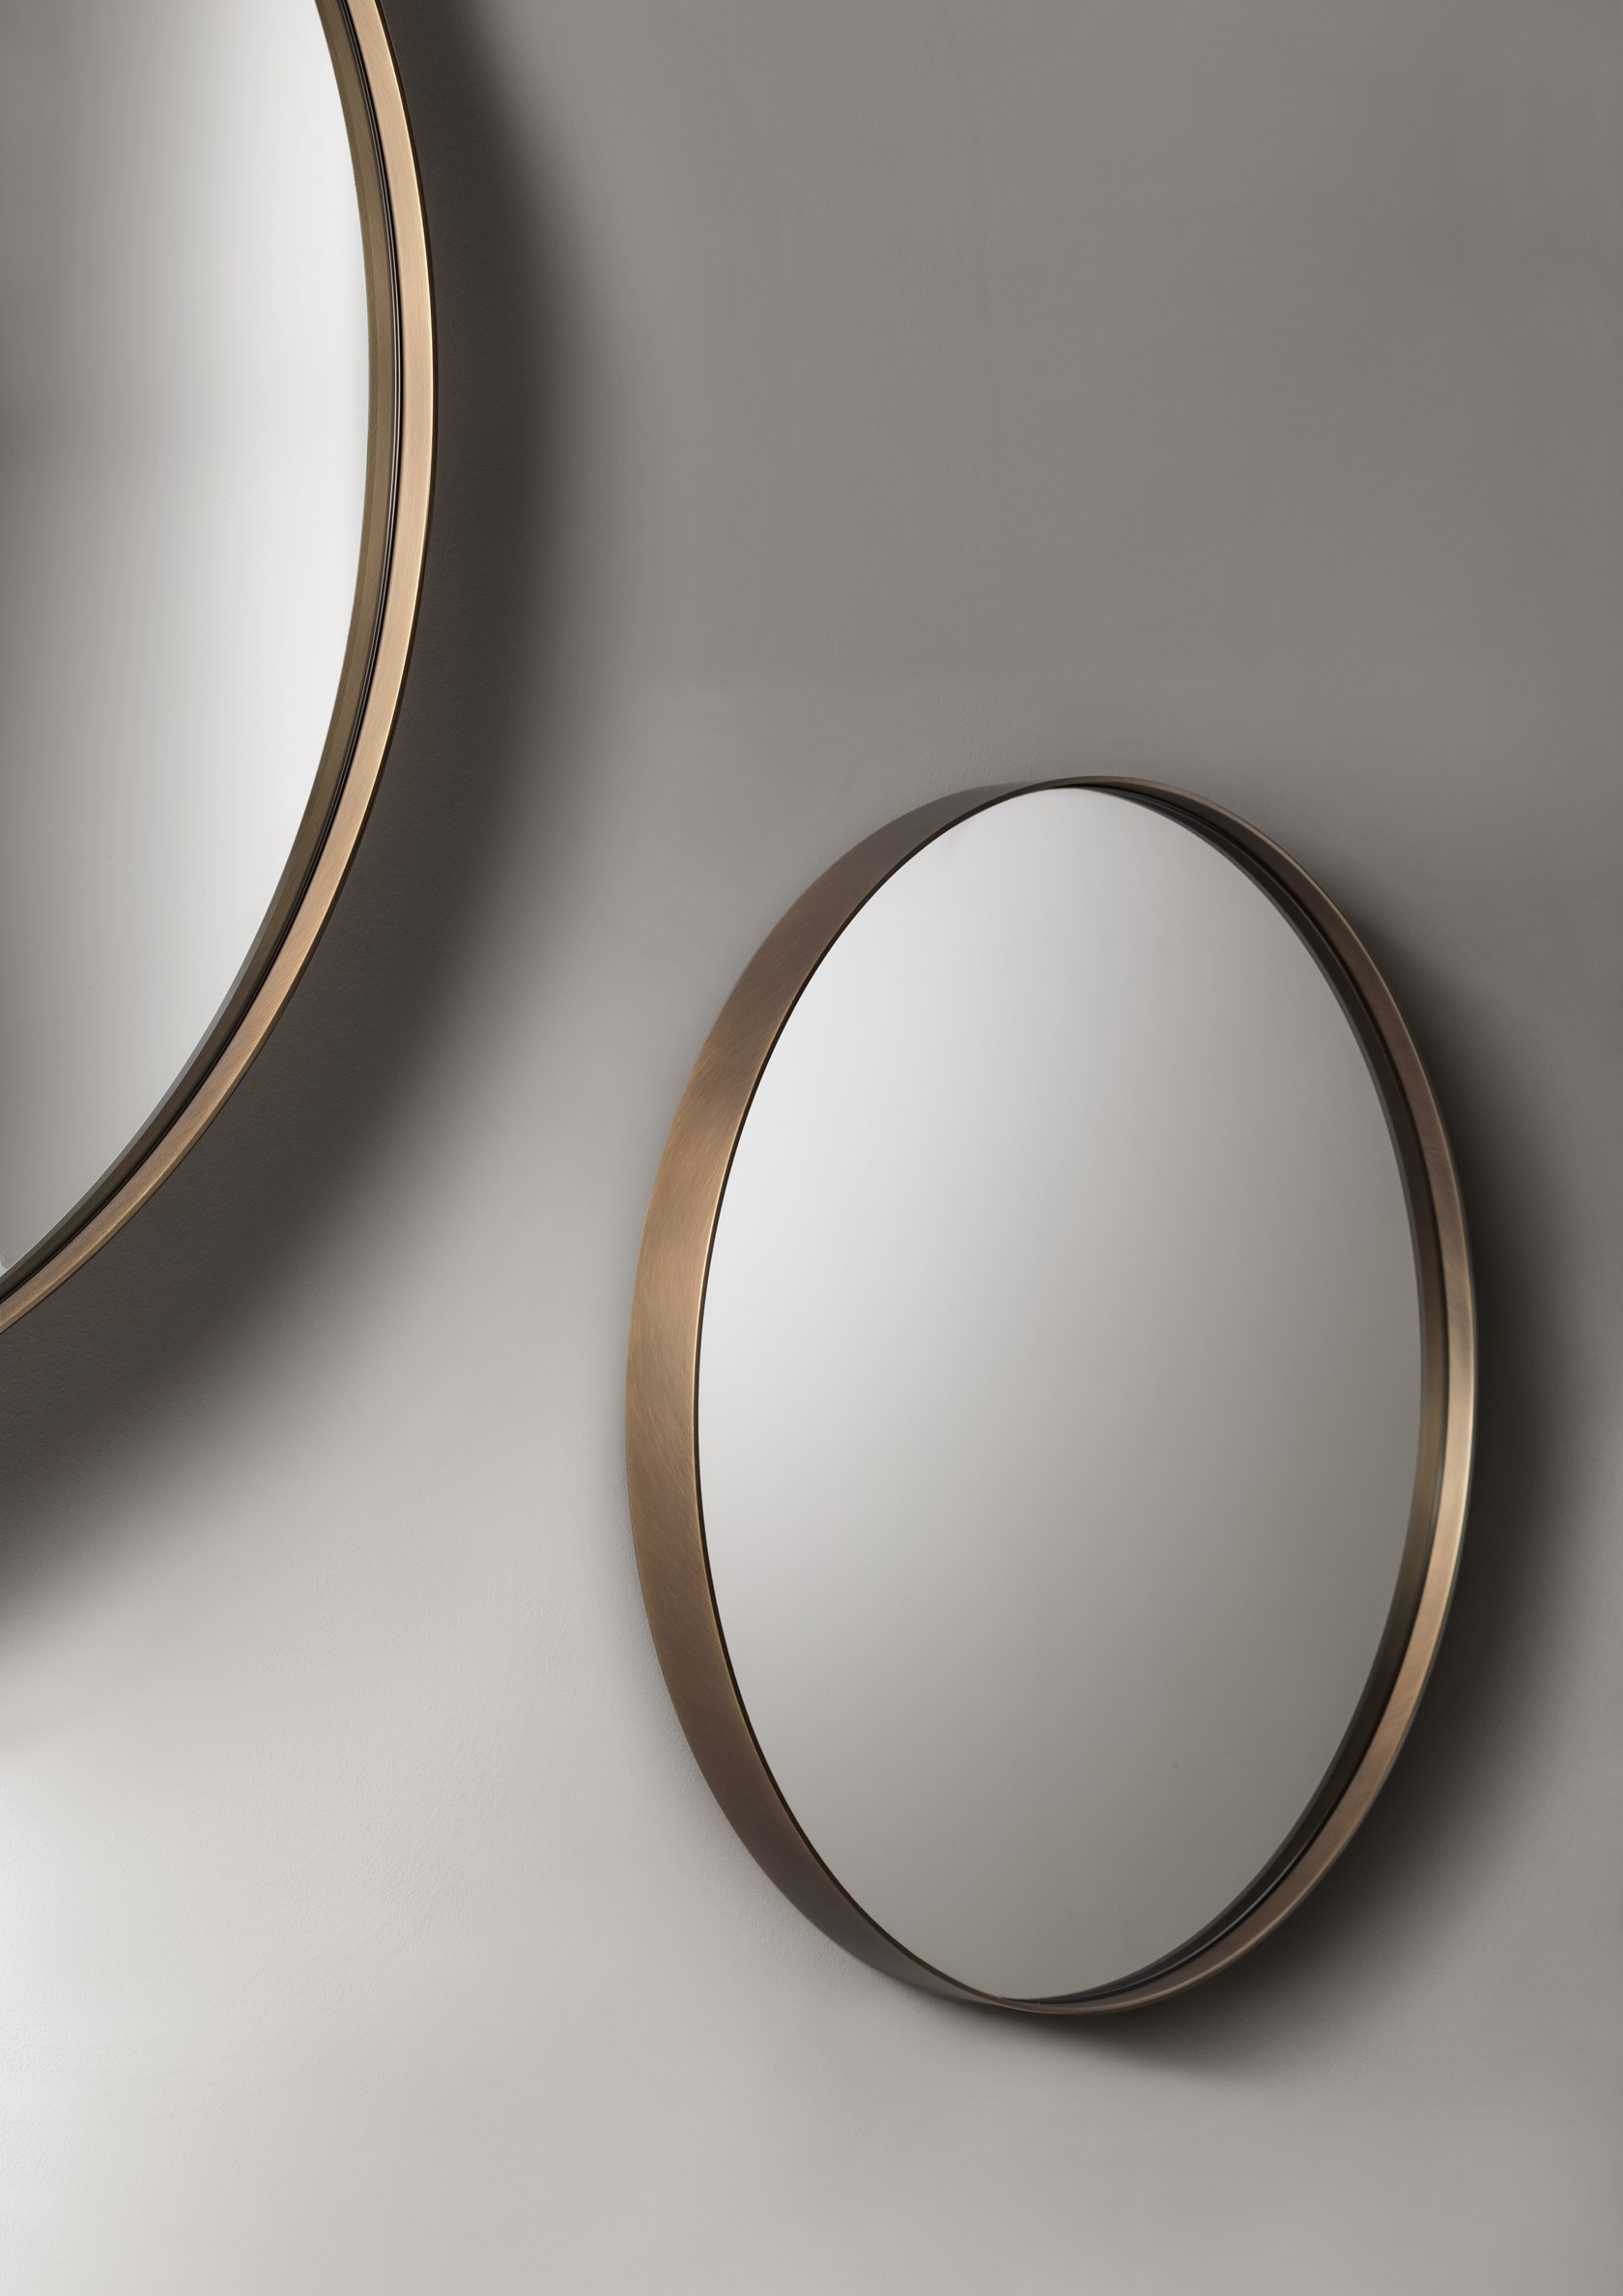 Riflesso Mirror - A collection of wall-mounted mirrors that celebrates the virtues of simplicity.‎ Characterized by the essential, complete form of the circle, Riflesso is distinguished by the thick brass and iron frames that outline its reflective surfaces, delimiting rings of different sizes to hang alone or in groups.‎ Versatile pieces perfectly suited to the contemporary nature of domestic living, these decorative items combine the richness of De Castelli finishes with the extreme essentialism of its shapes.‎